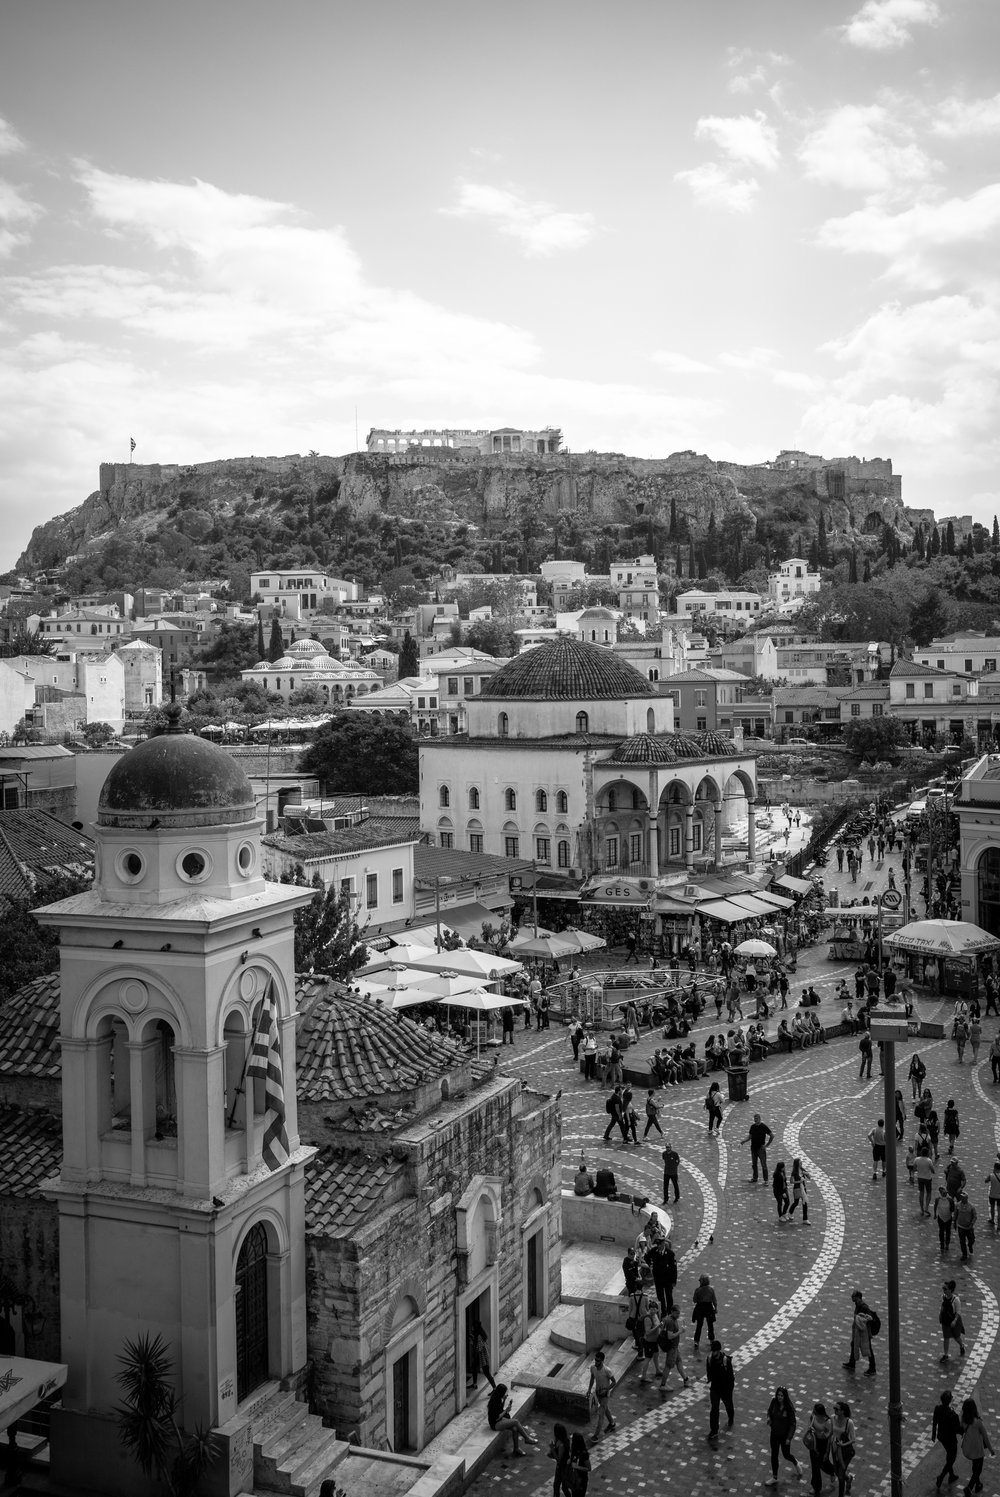 Monastiraki Square looking towards the Acropolis, Athens. Greece. 2018.